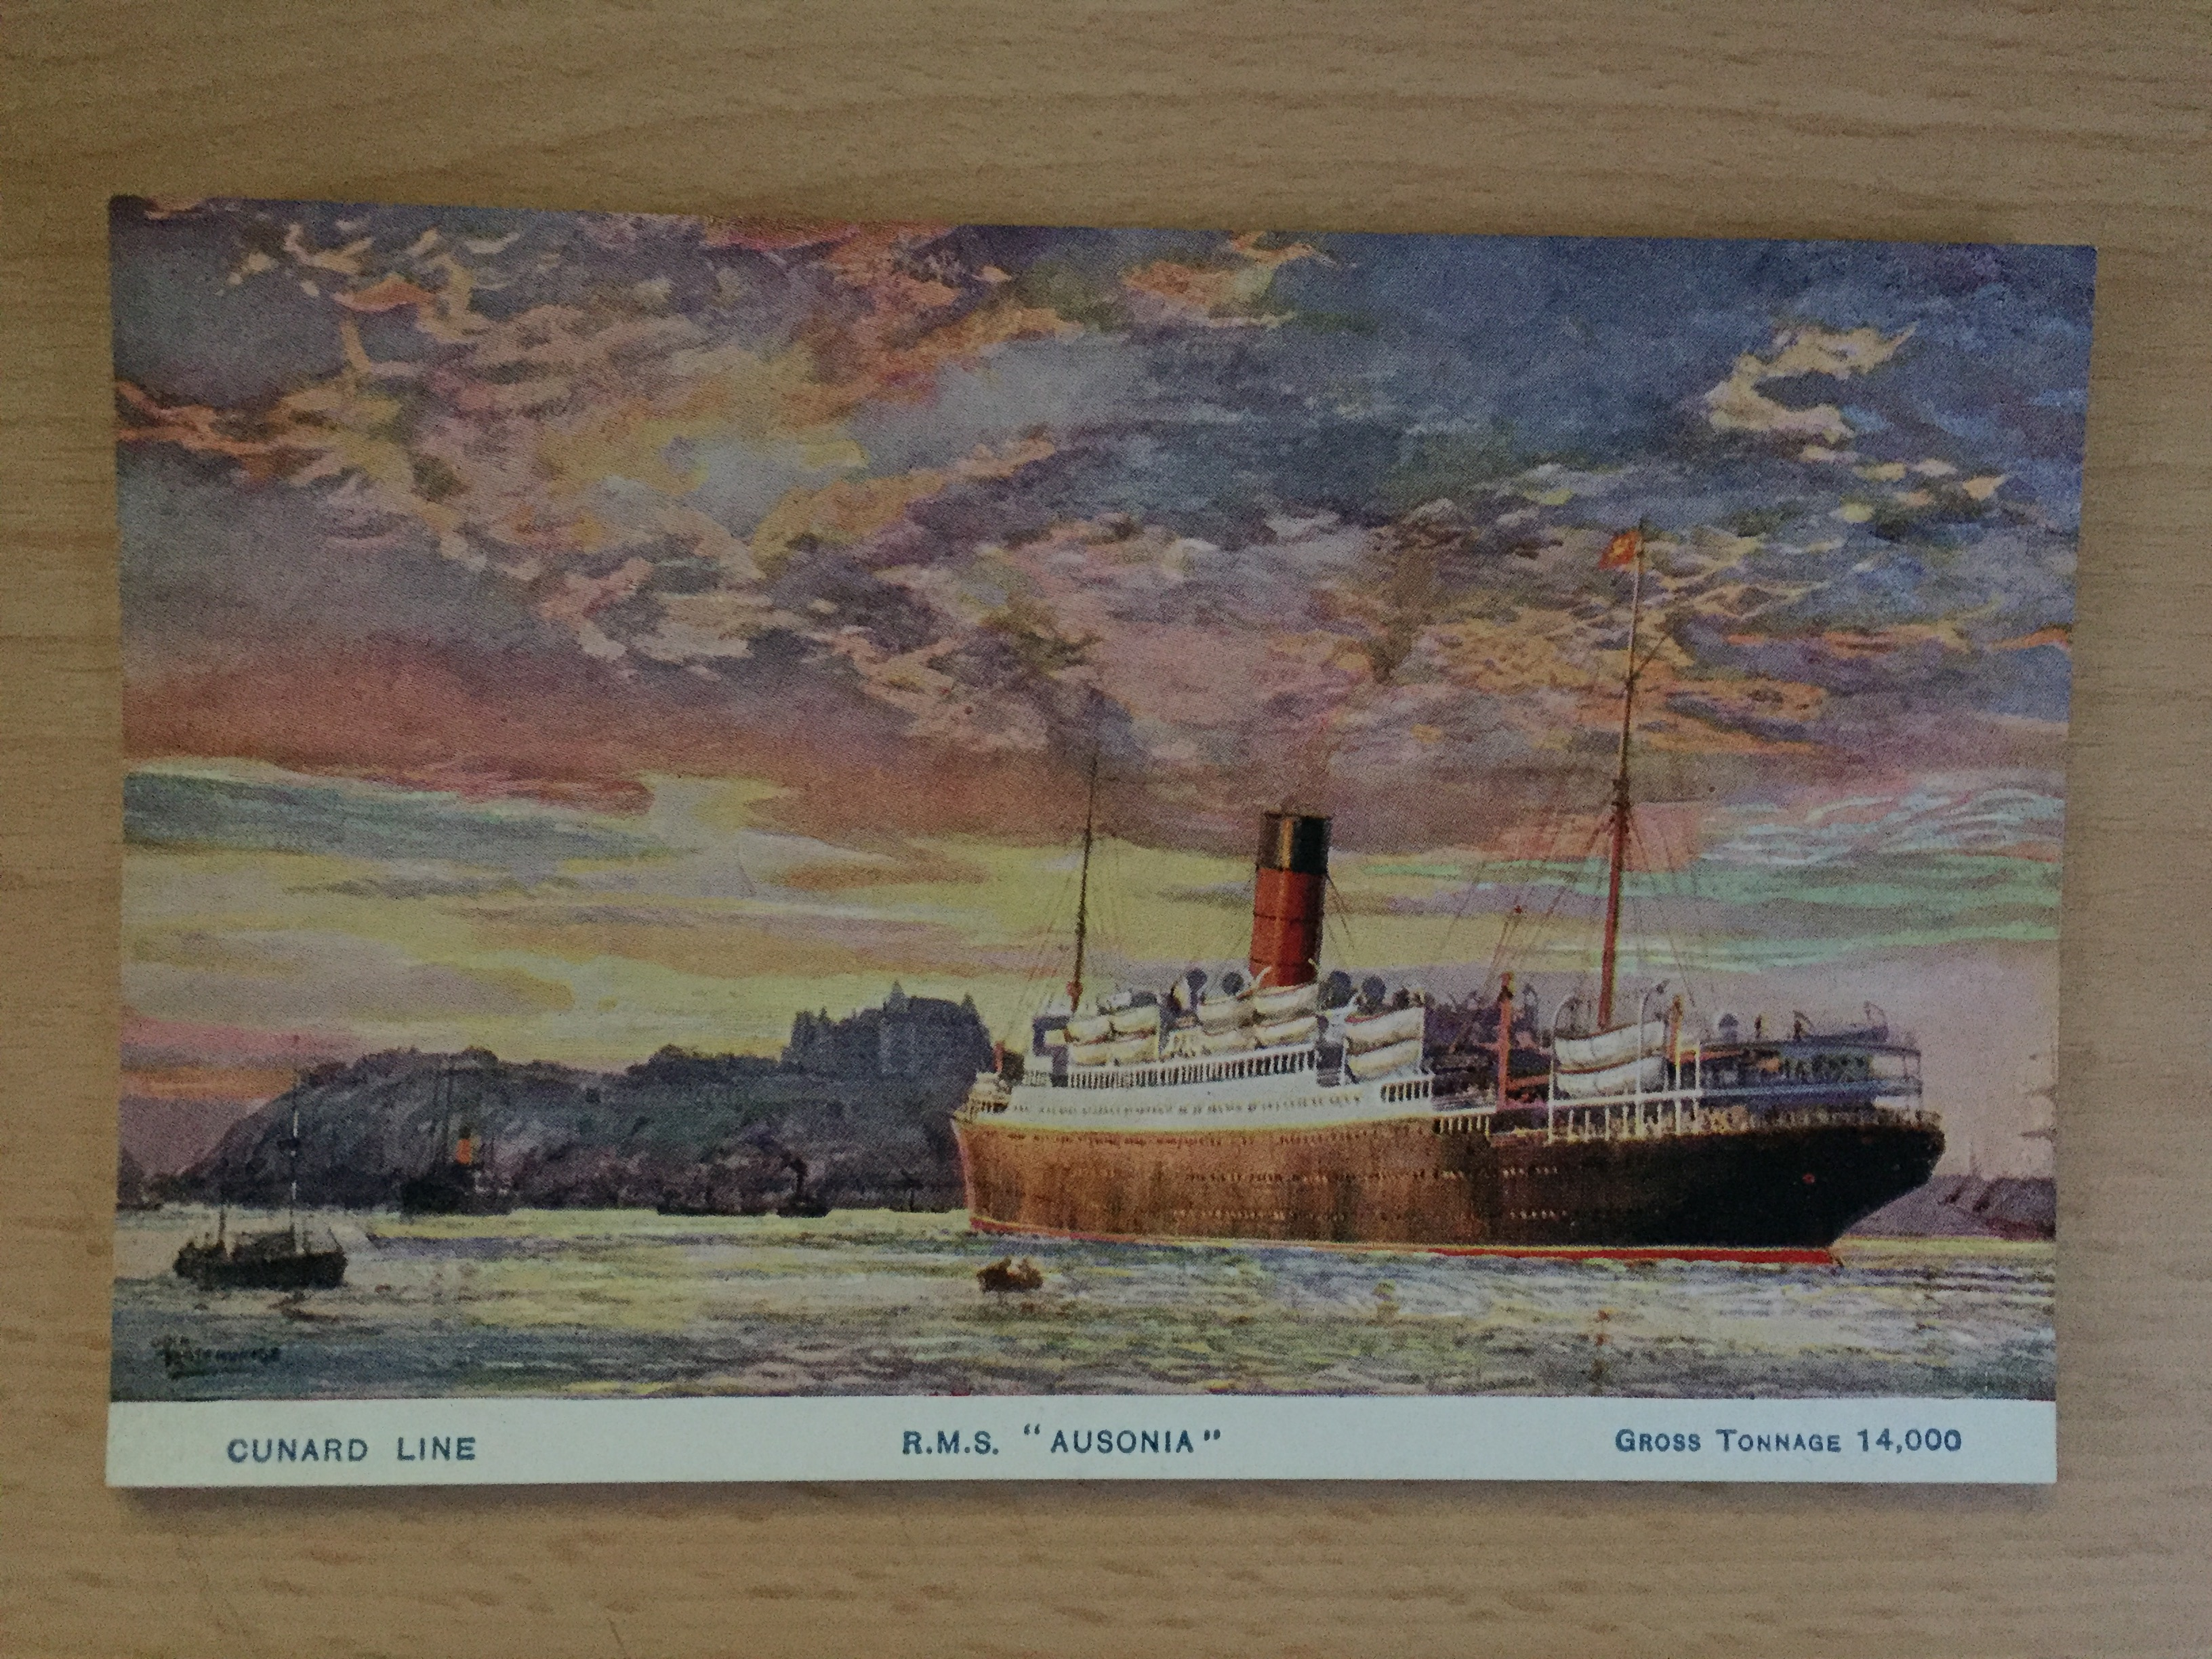 USED COLOUR POSTCARD FROM THE CUNARD WHITE STAR LINE VESSEL THE AUSONIA